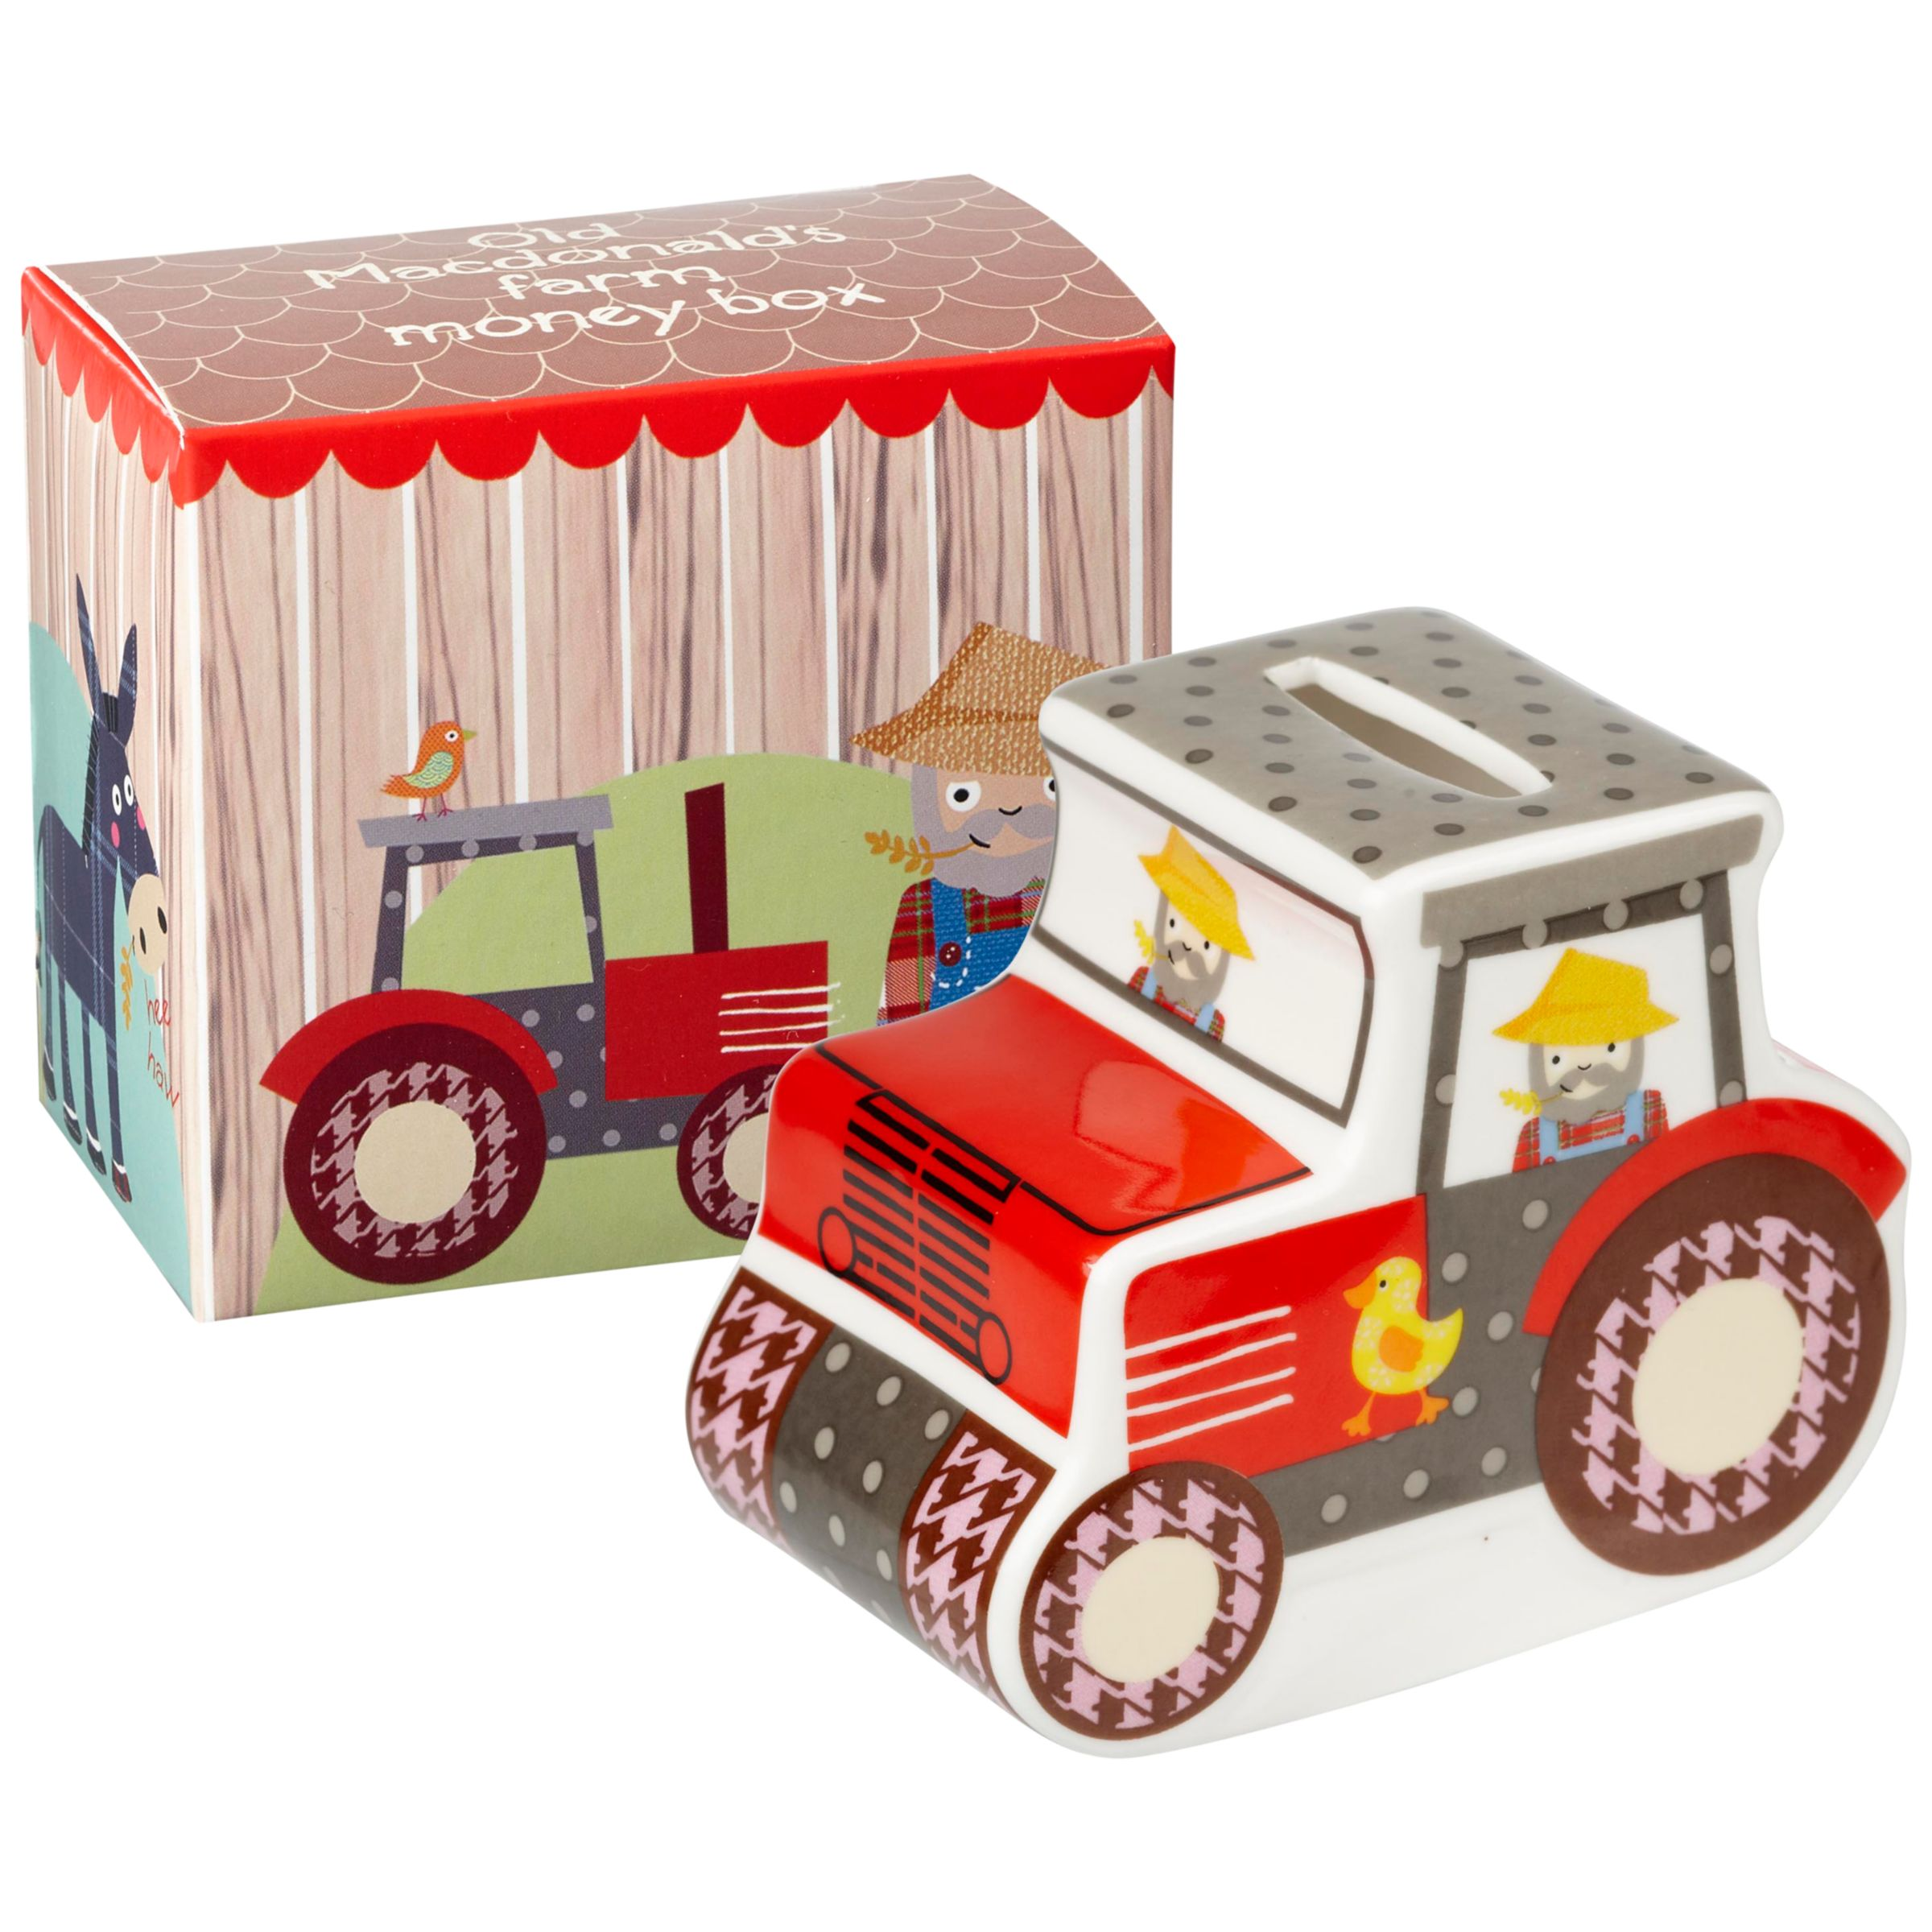 Little Rhymes Little Rhymes Old Macdonald Money Box